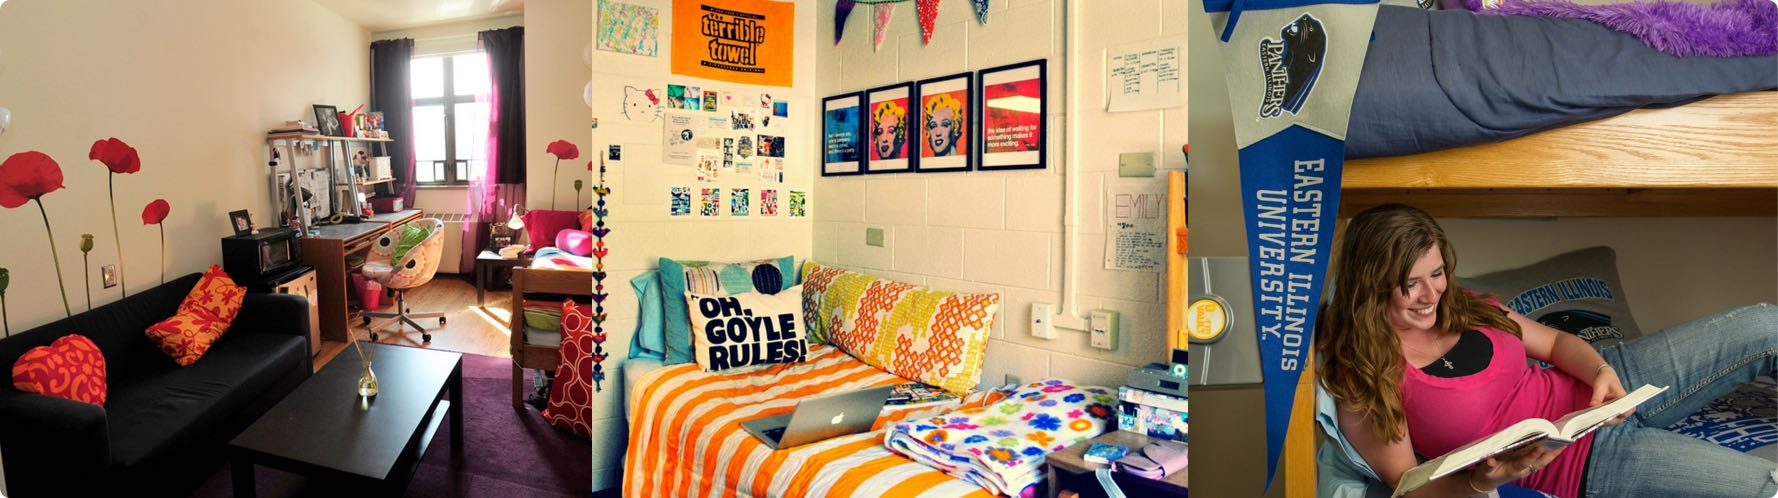 dorm room rugs